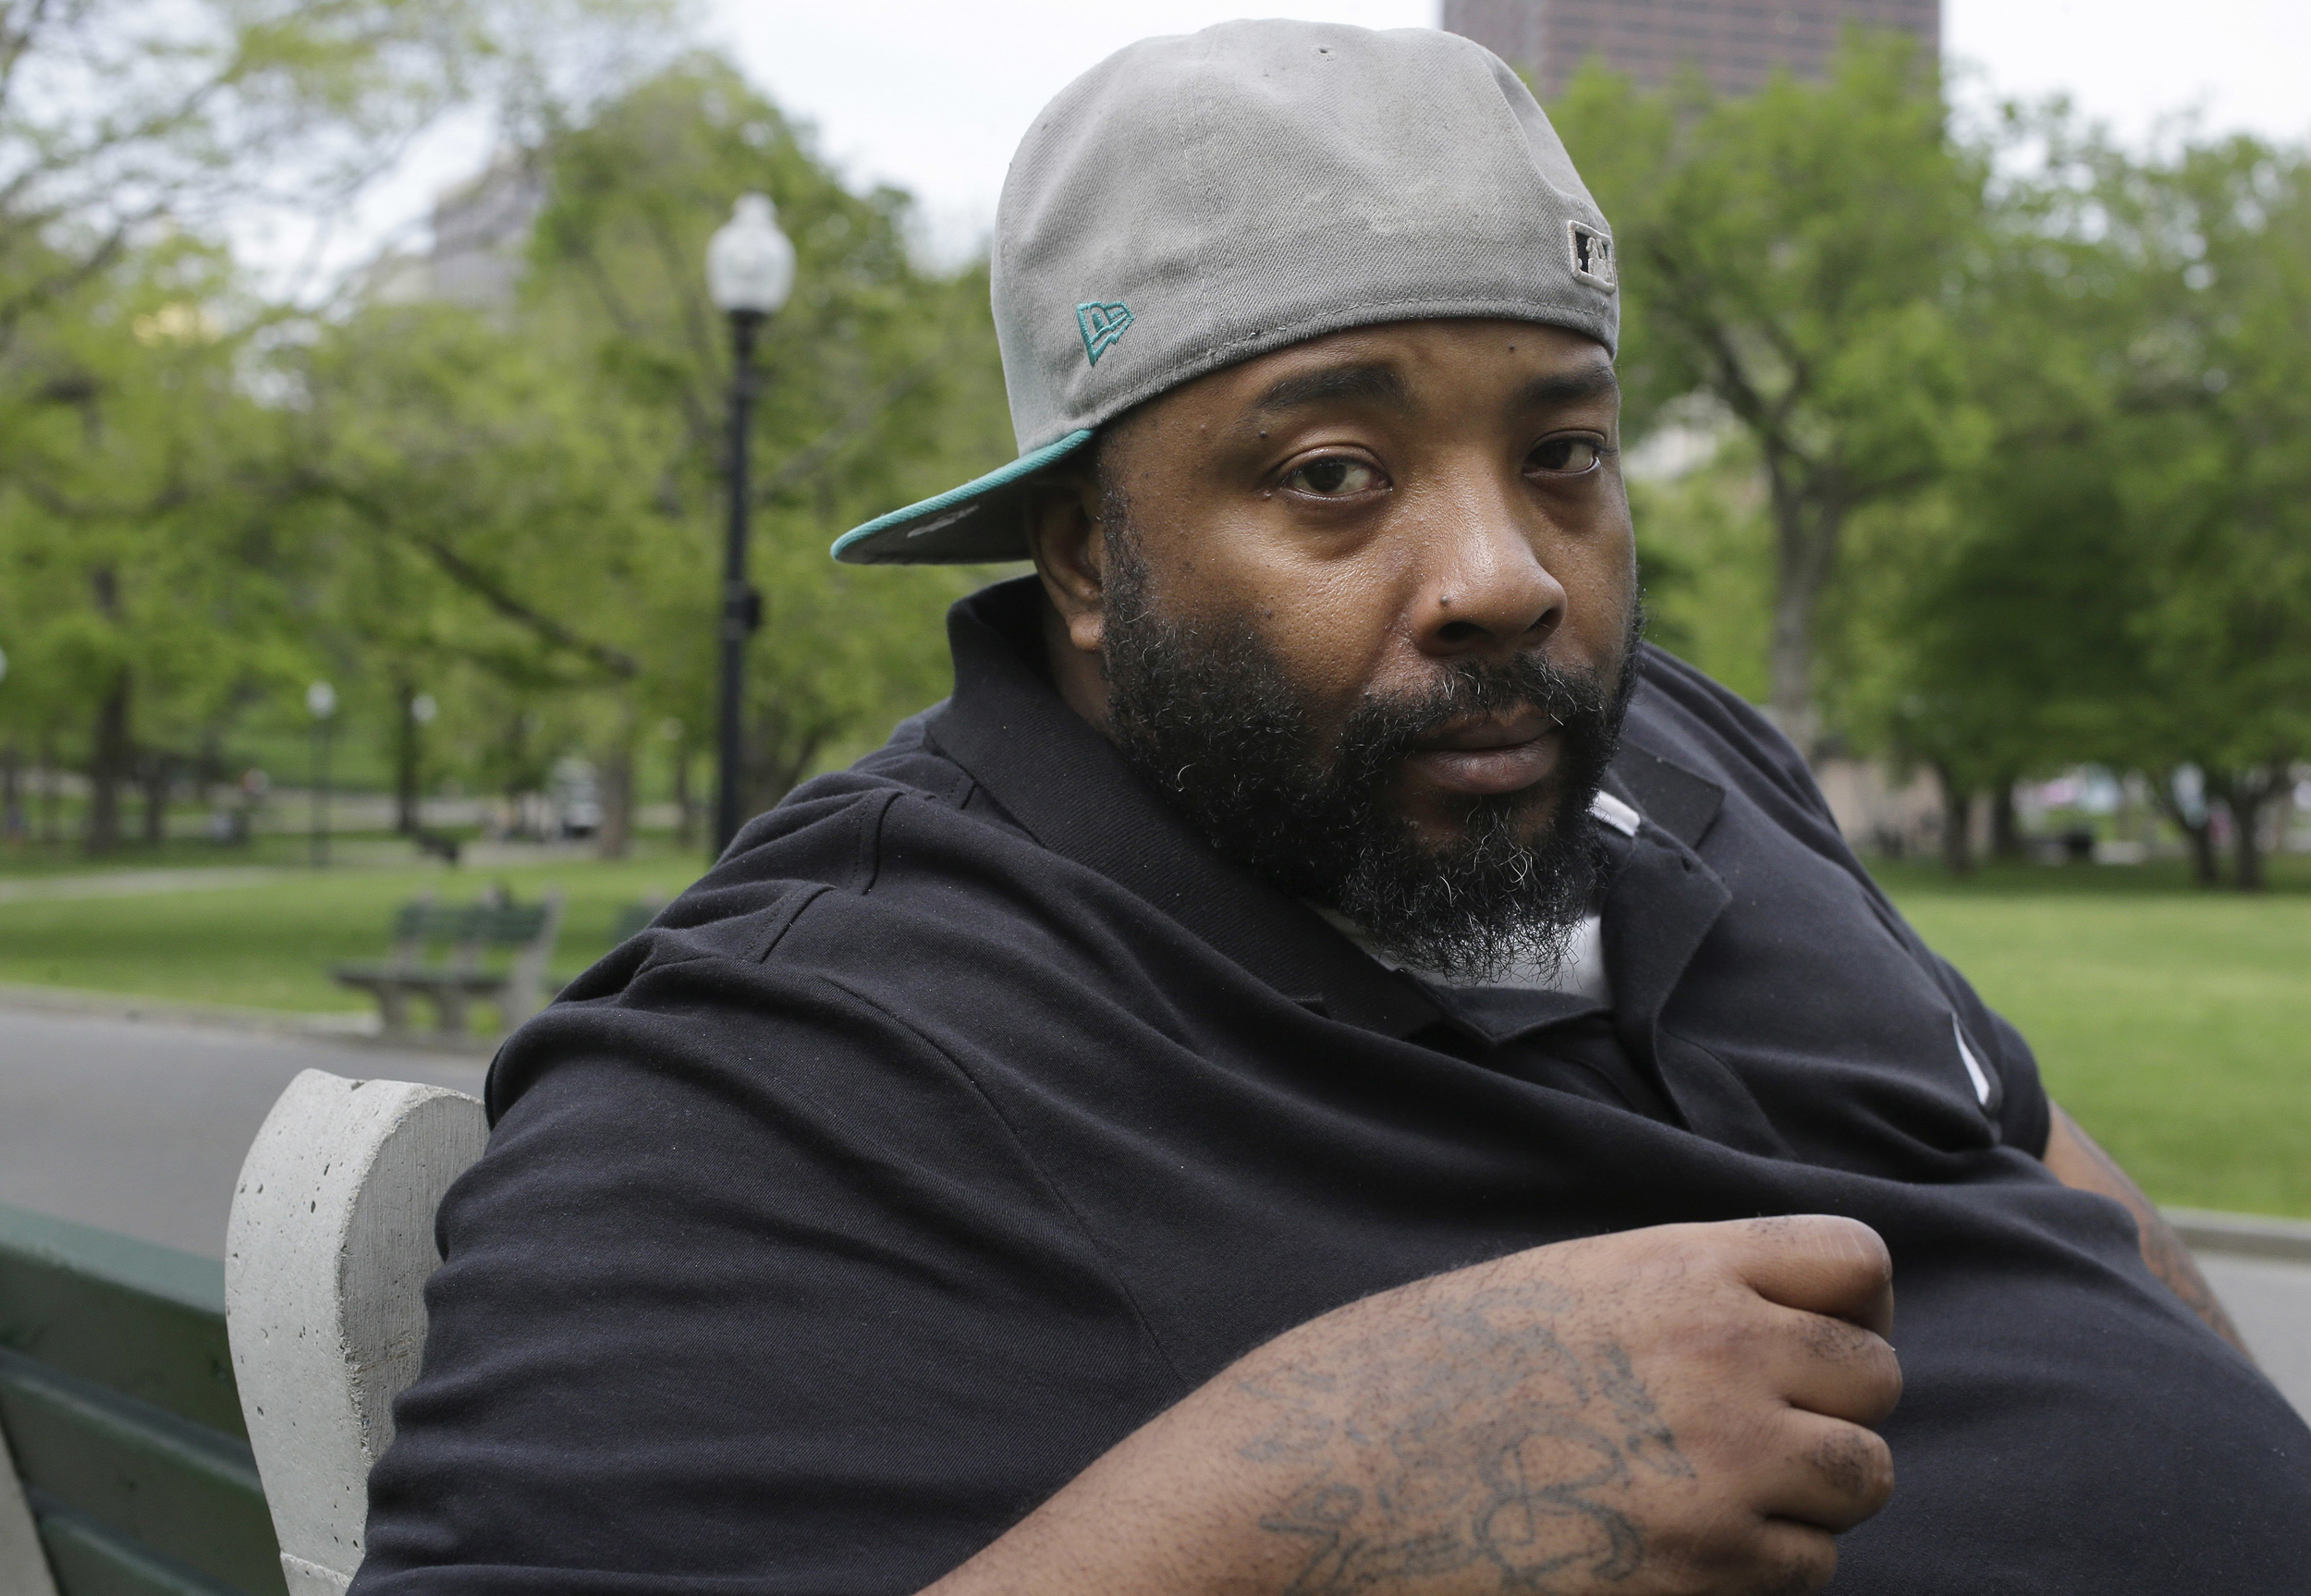 Black man jailed after trying to pay Burger King with $10 bill, lawsuit claims